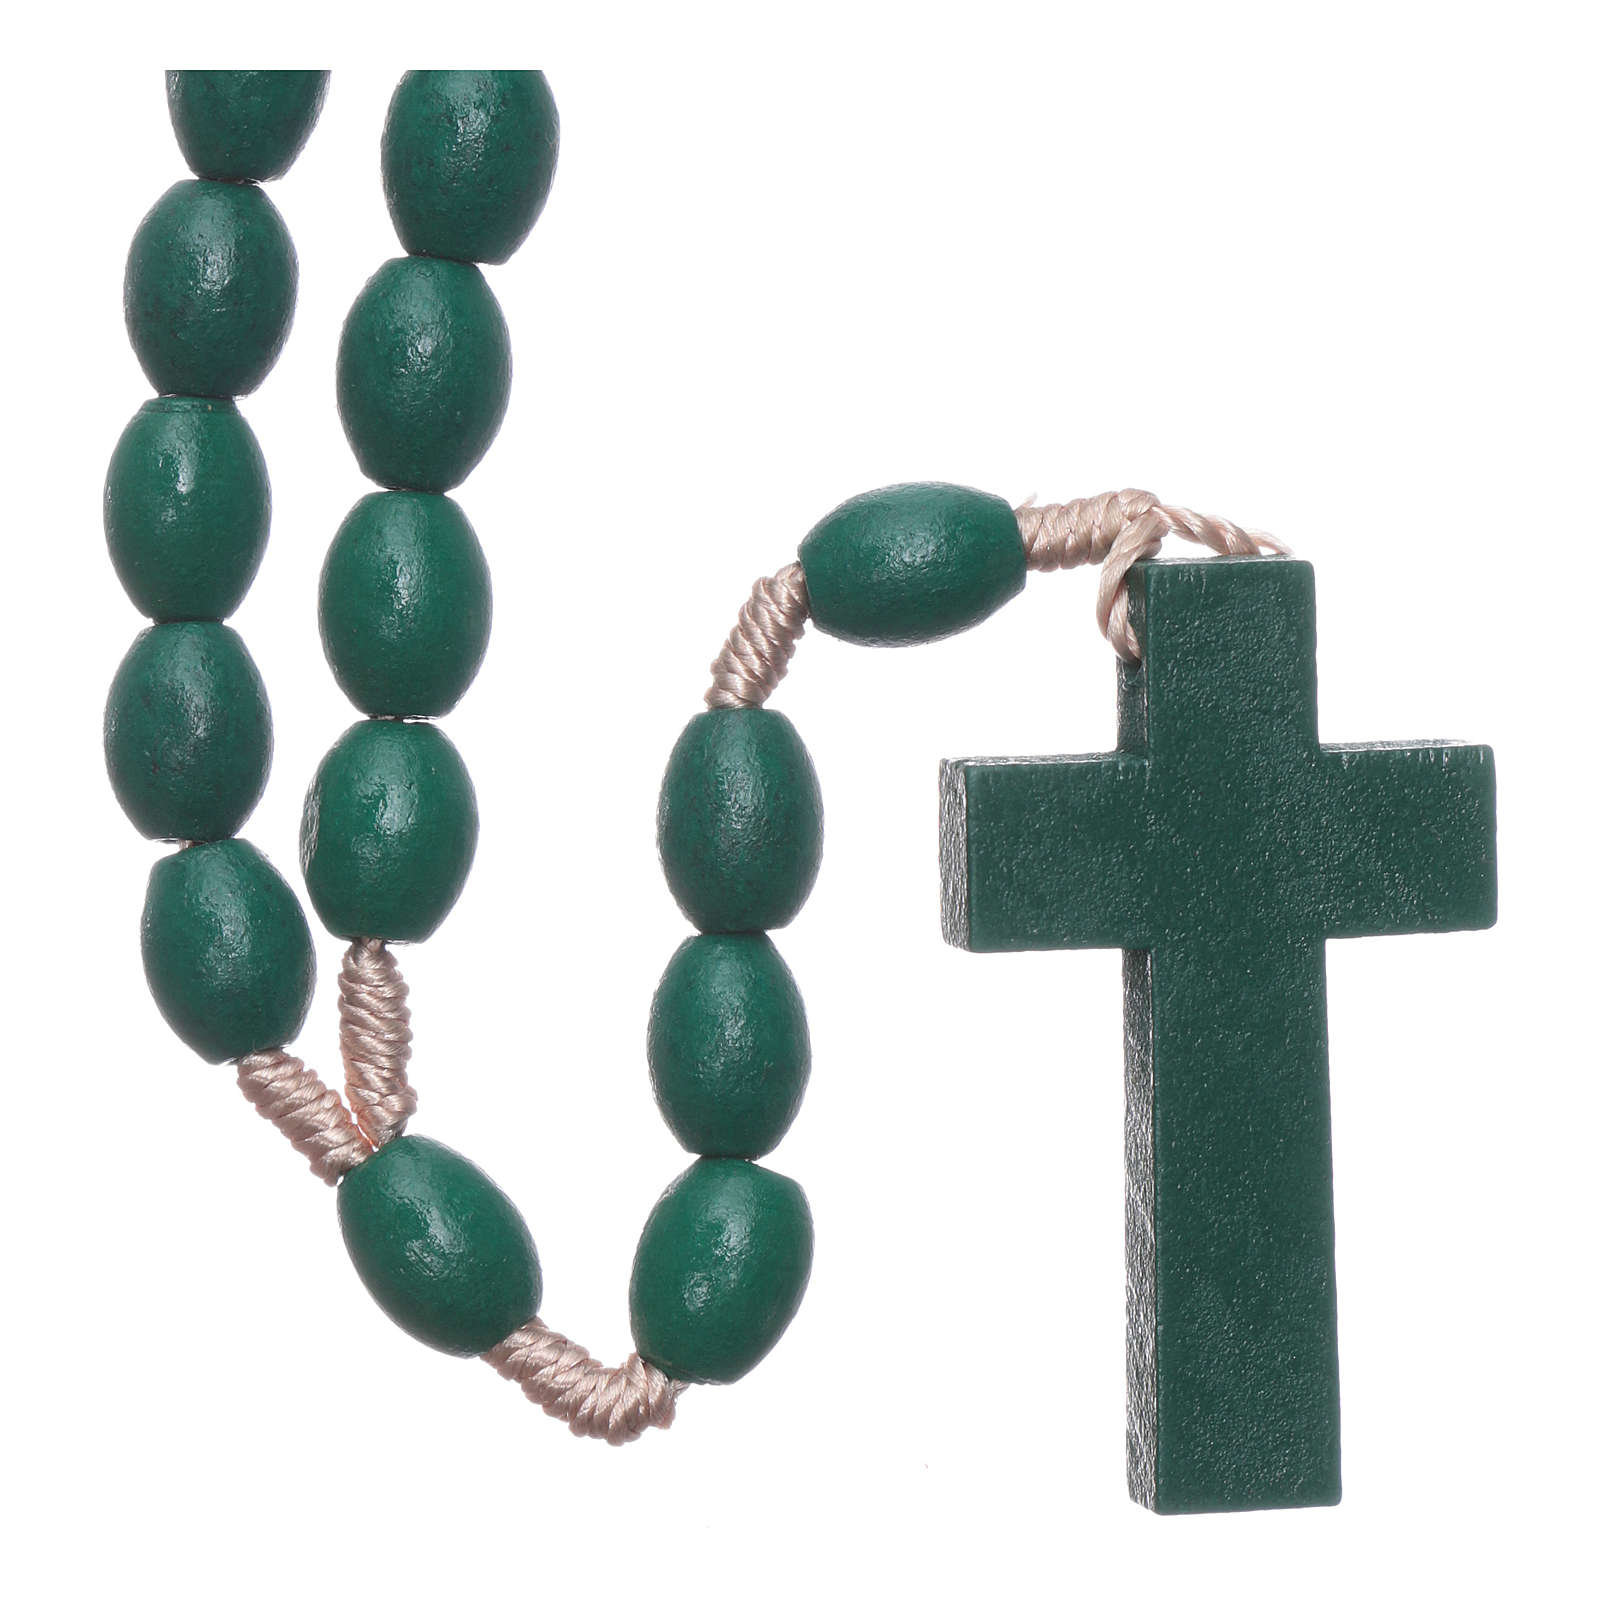 Rosary with oval green grains 8 mm silk setting 4